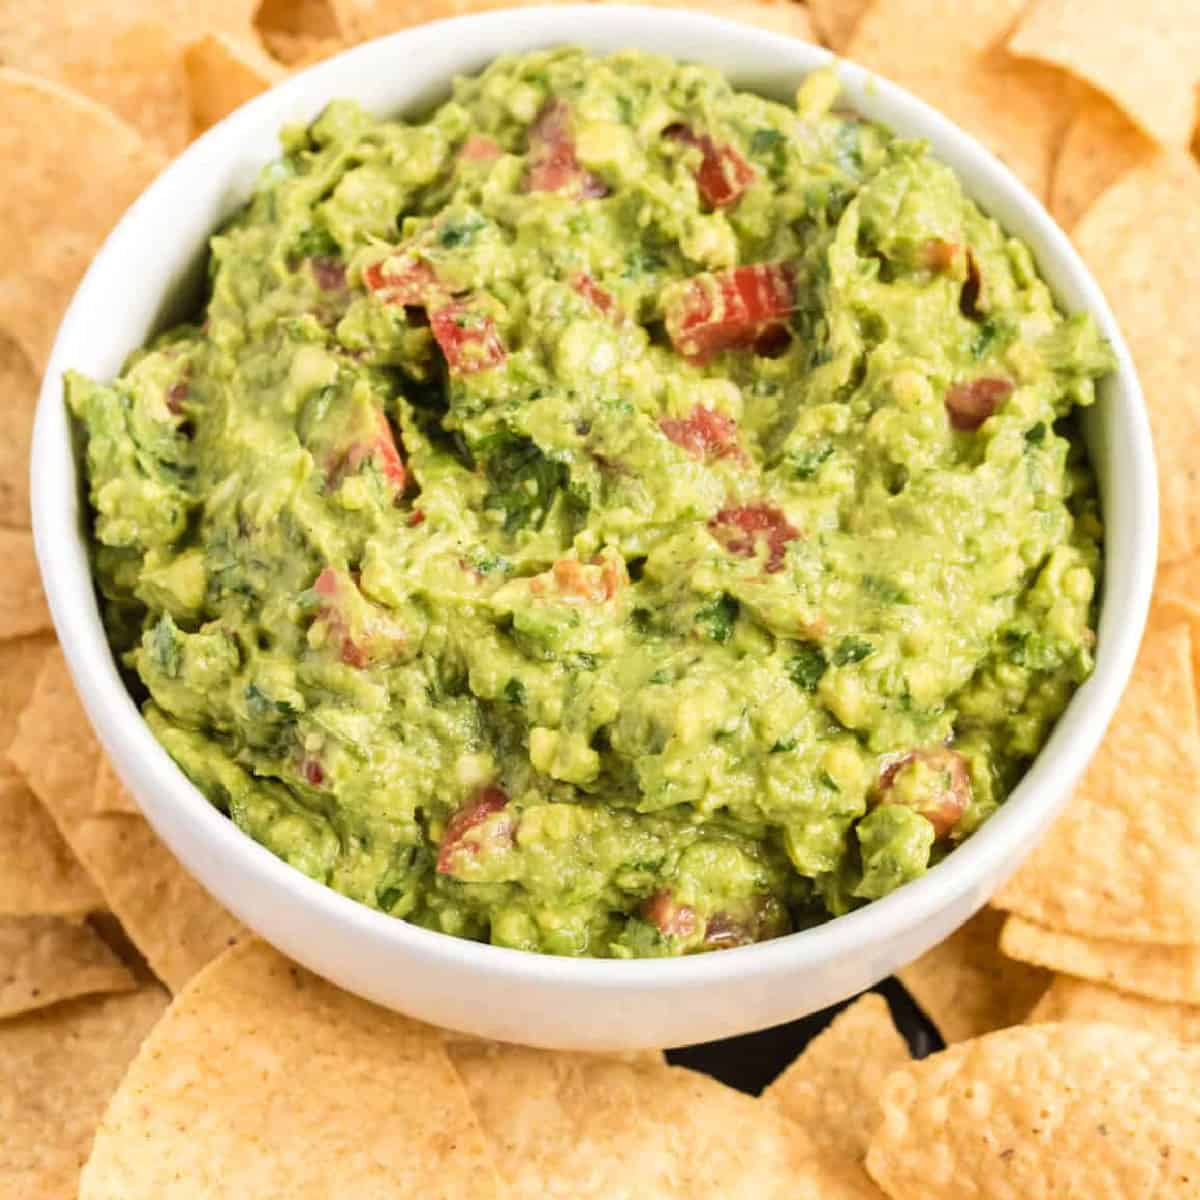 guacamole with tomatoes in a serving bowl surrounded by tortilla chips